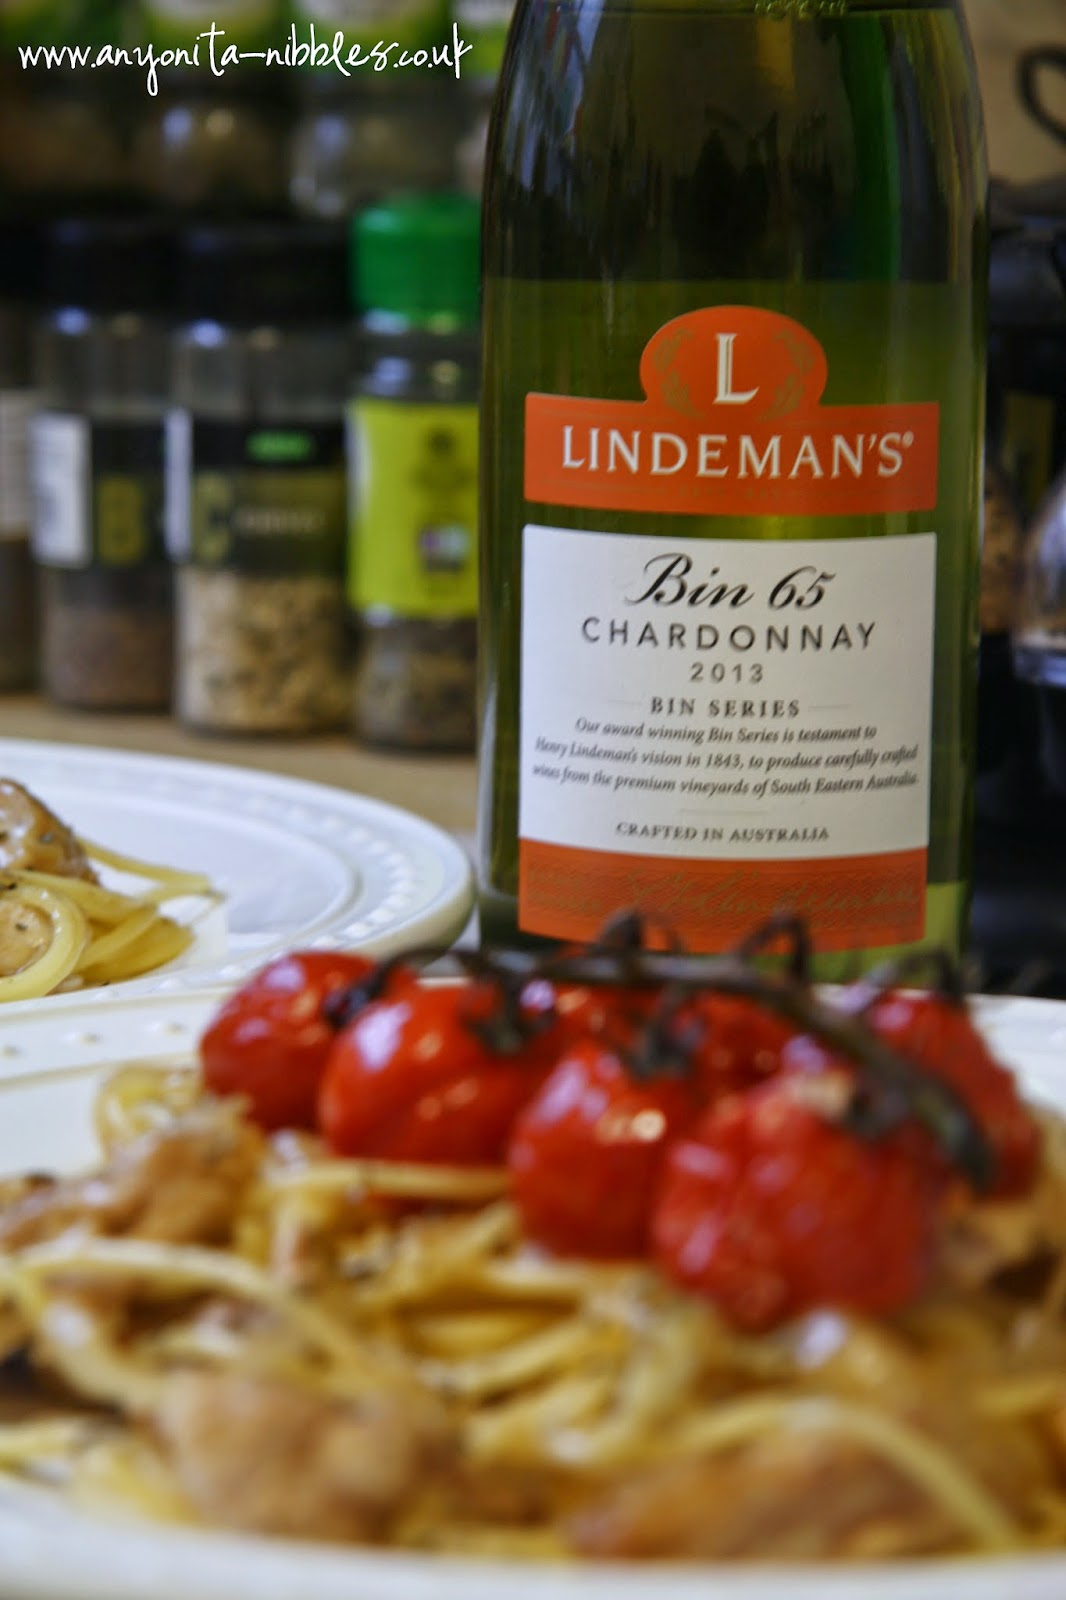 Lindeman's Bin 65 2013 Chardonnay used in a chicken spaghetti recipe from www.anyonita-nibbles.co.uk